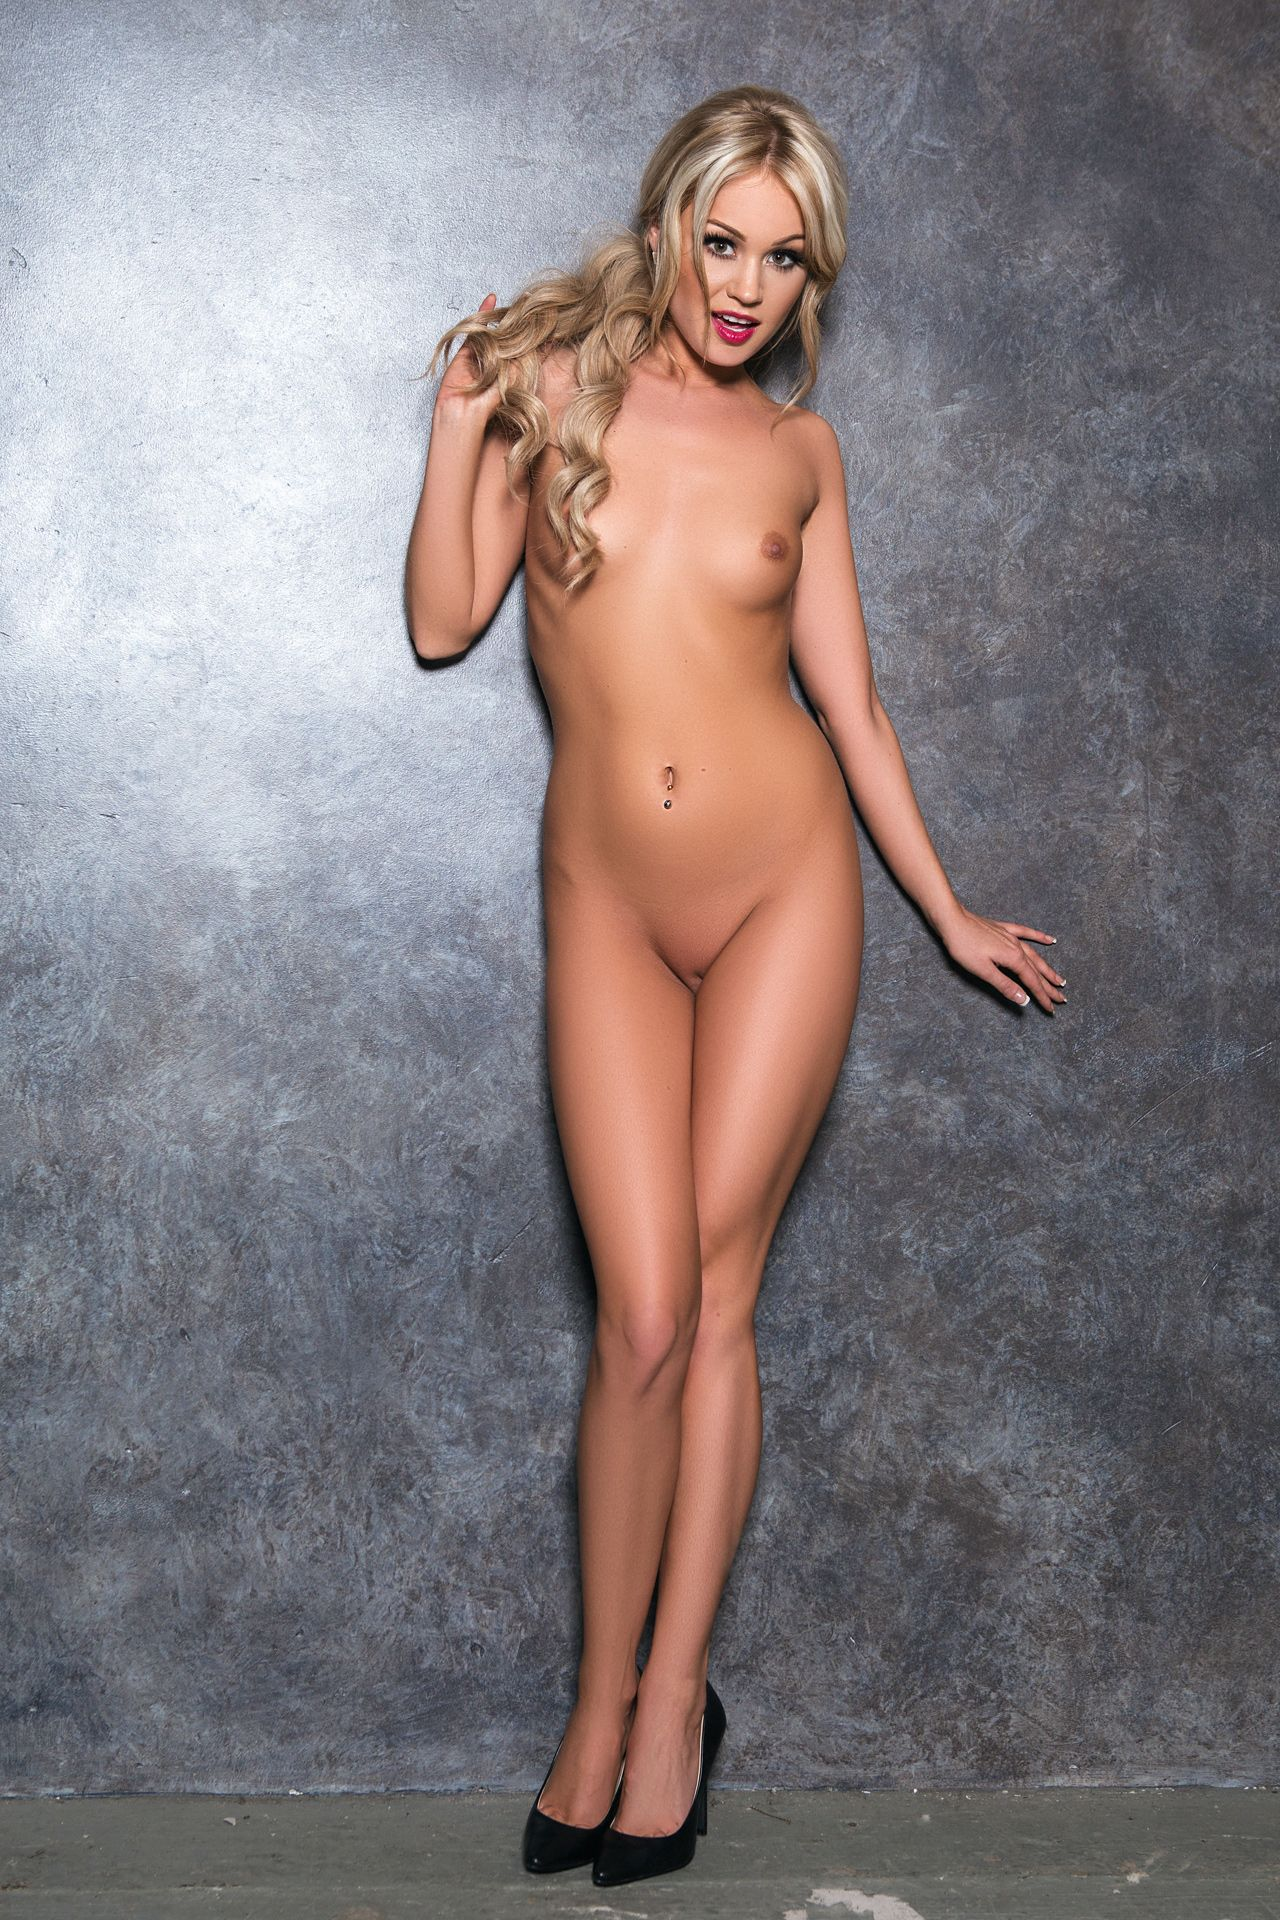 Opinion here Innocent nude women adults right